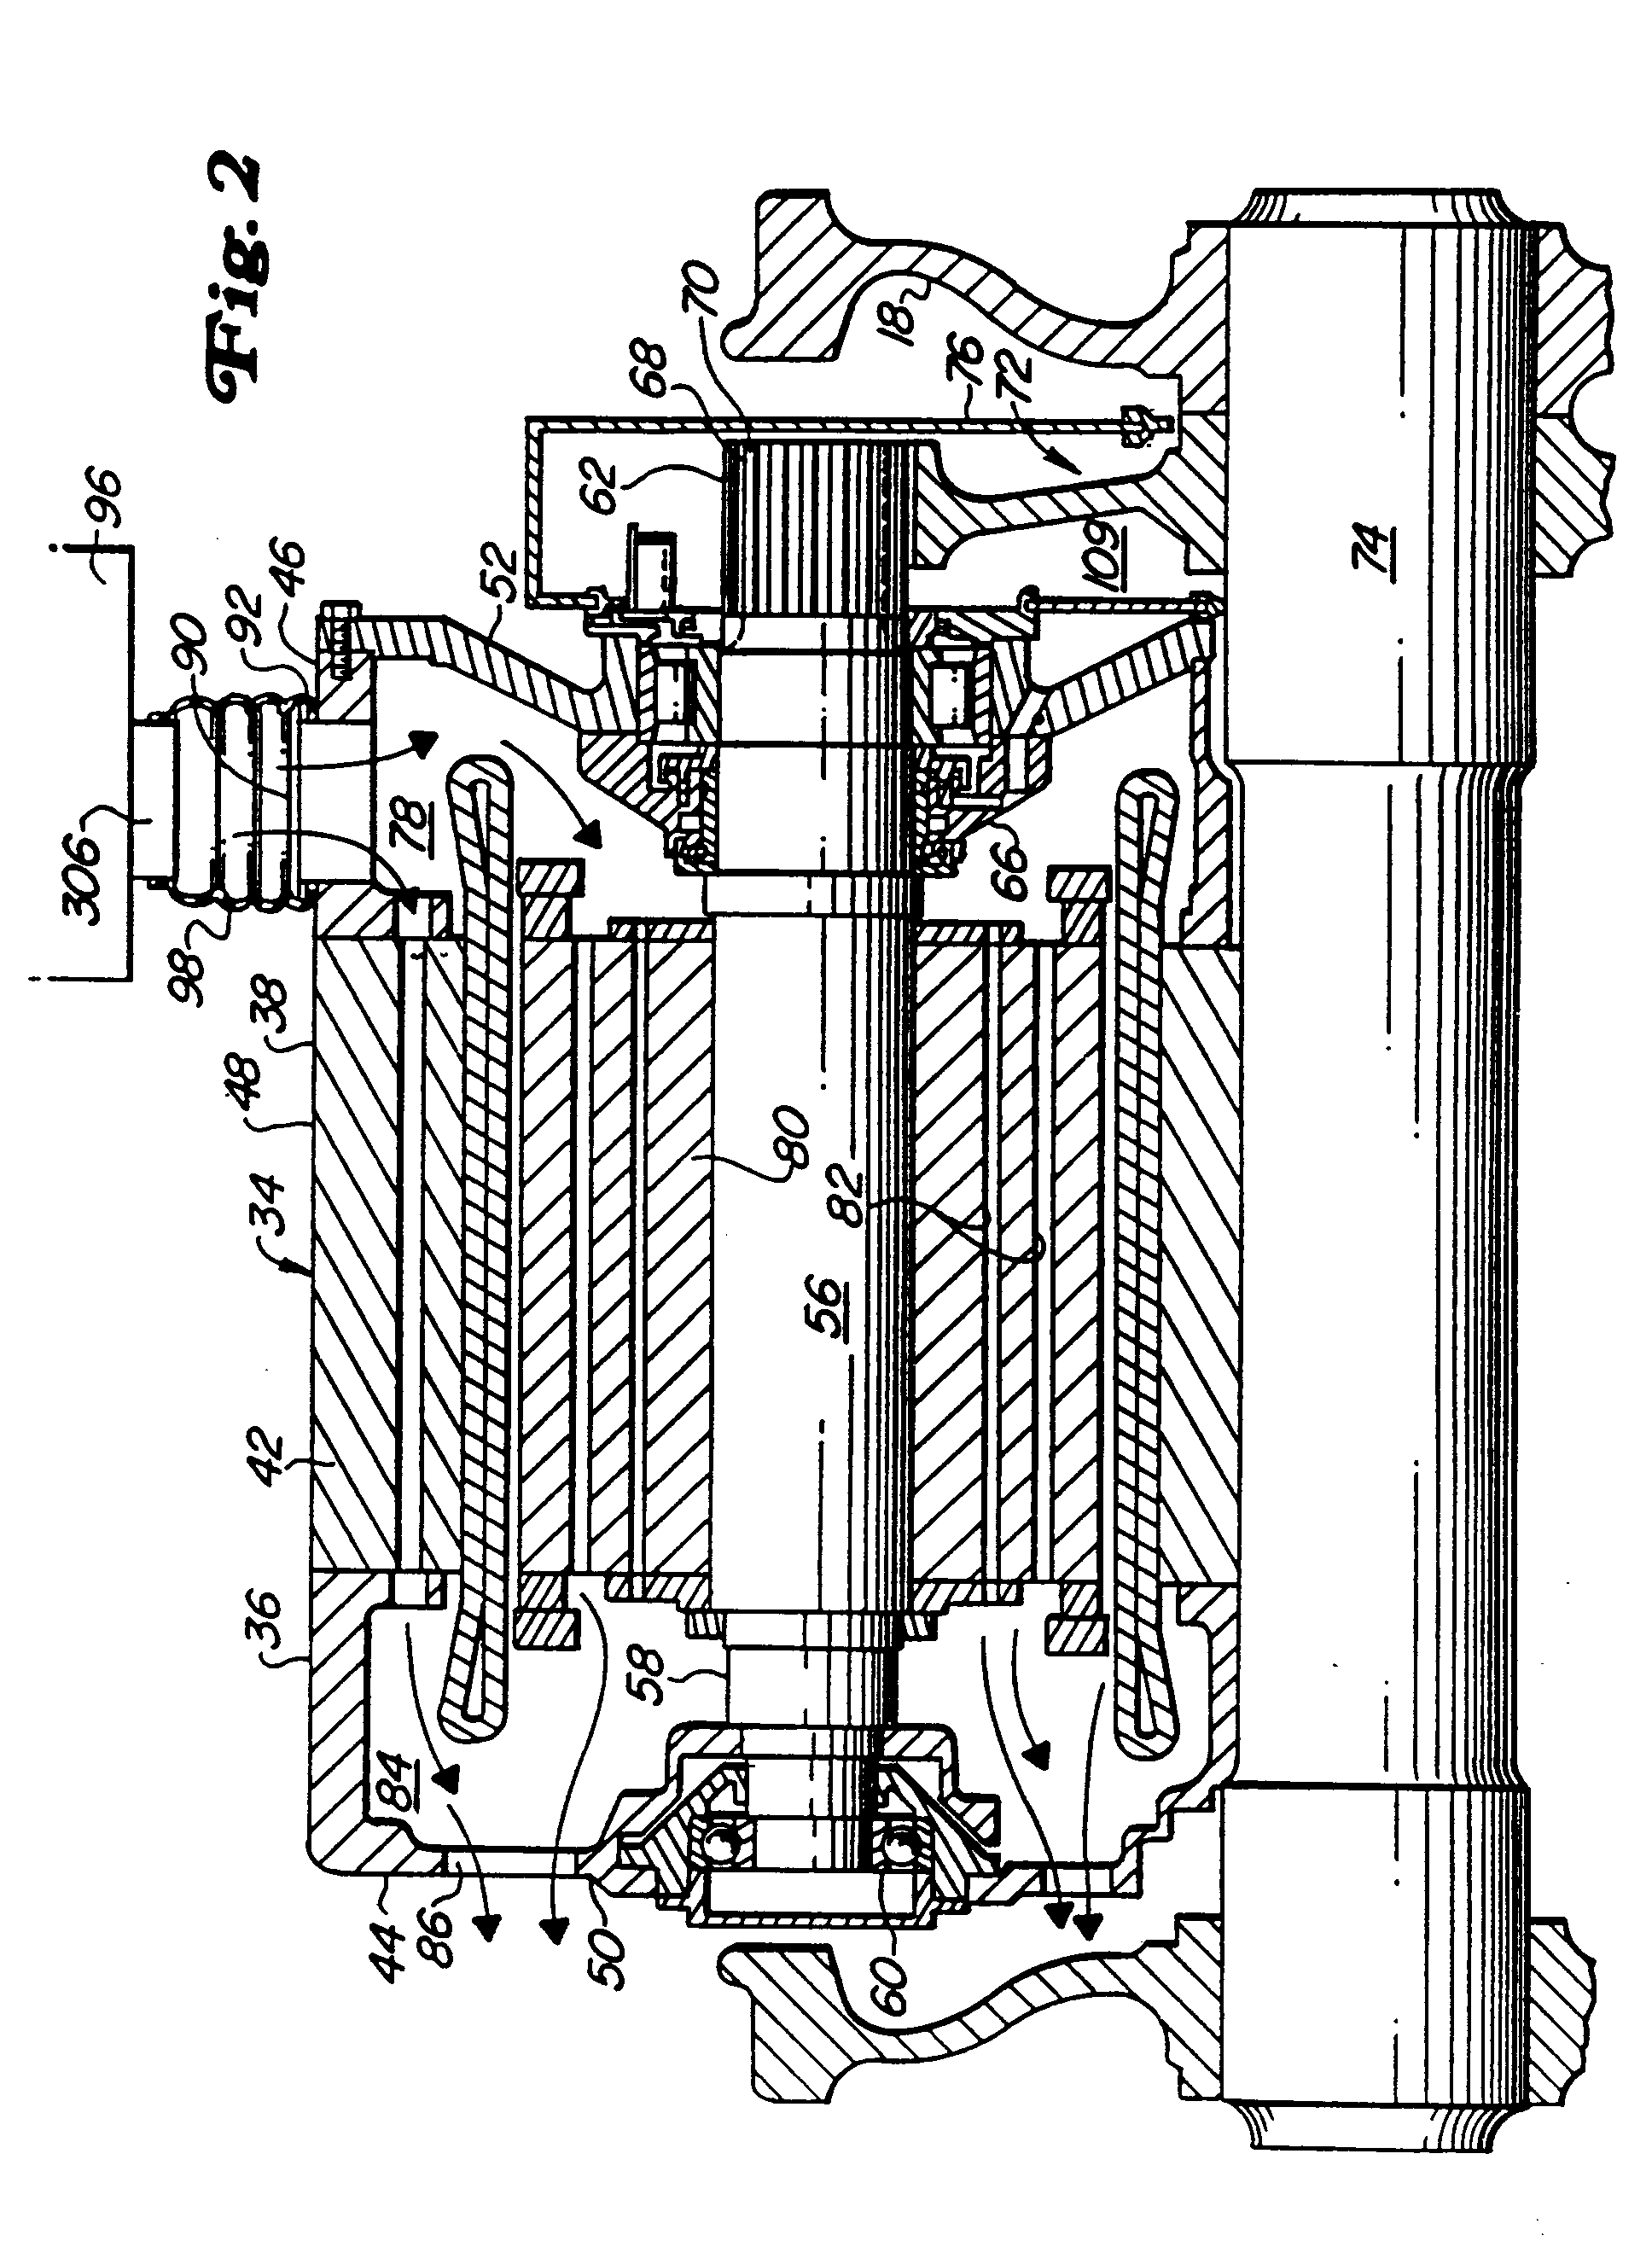 patent ep0656680a1 - ac traction motor with drive end bearing assembly for locomotive